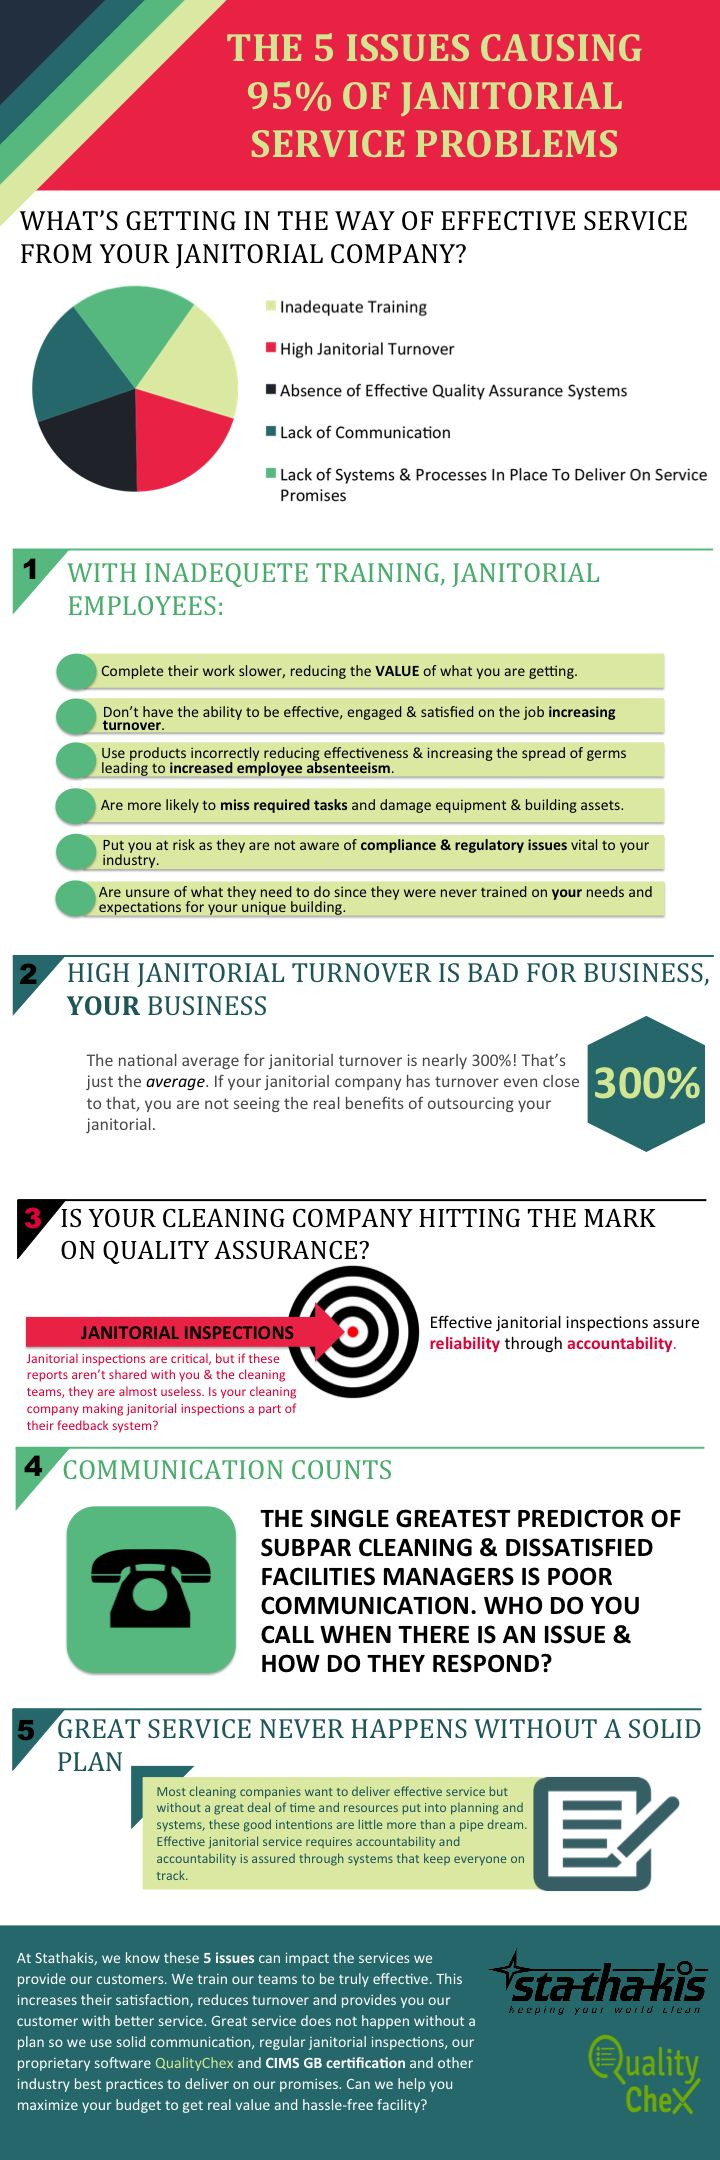 ideas about janitorial services thai harem janitorial service problems janitorial services janitorial services infographic